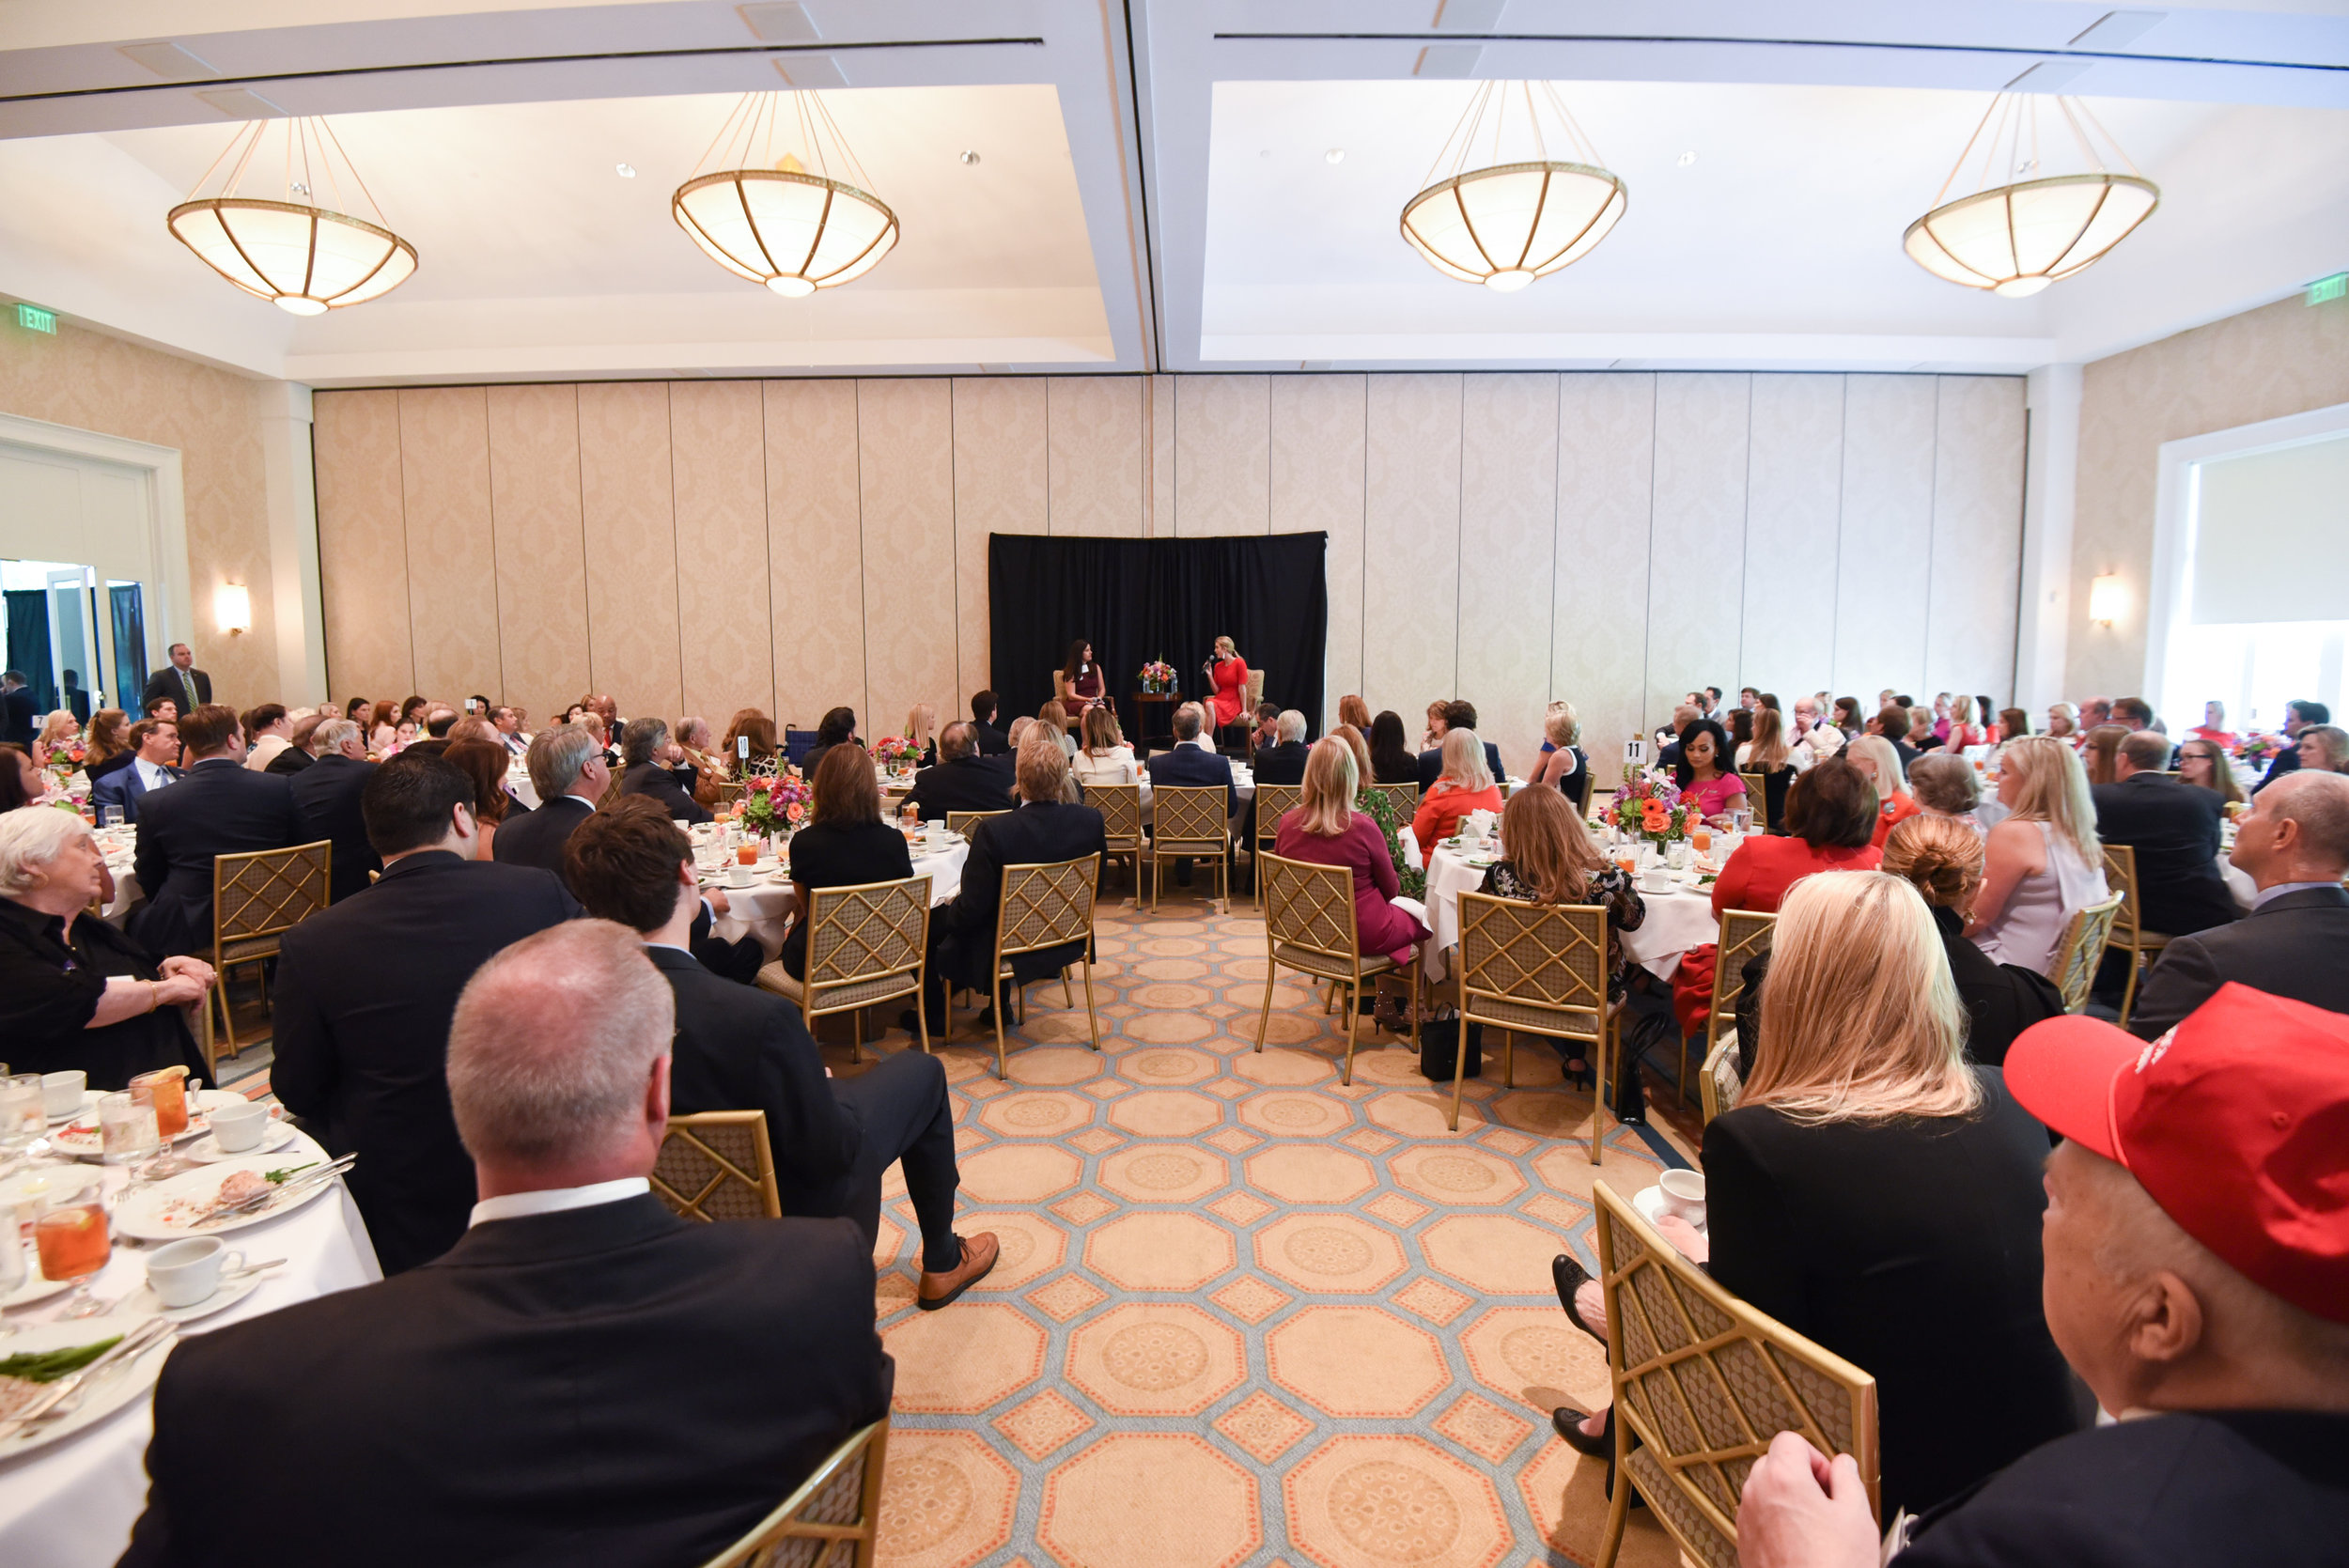 Ivanka Trump and supporters of her father, Donald J. Trump, at a Dallas luncheon on September 21.